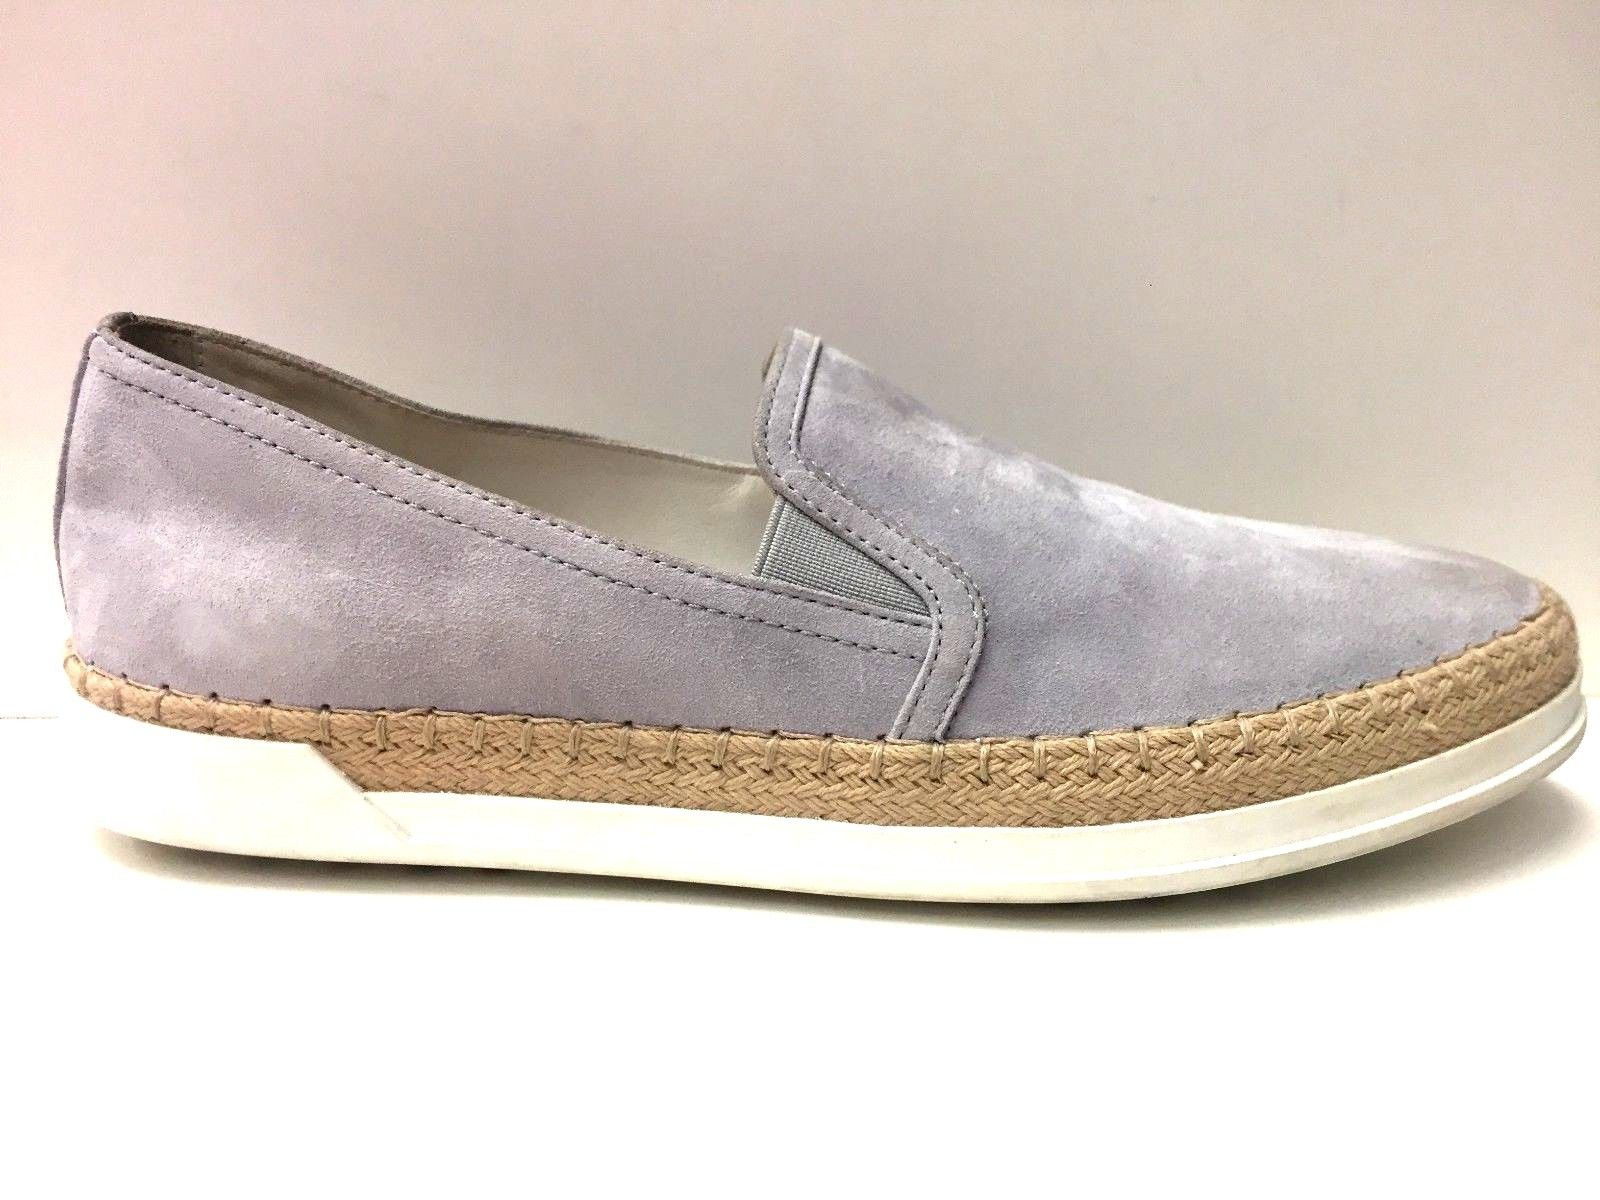 SCARPE MOCASSINI SLIP ON DONNA TOD'S ORIGINALE XXW0TV0J970HR0 PELLE P/E NEW